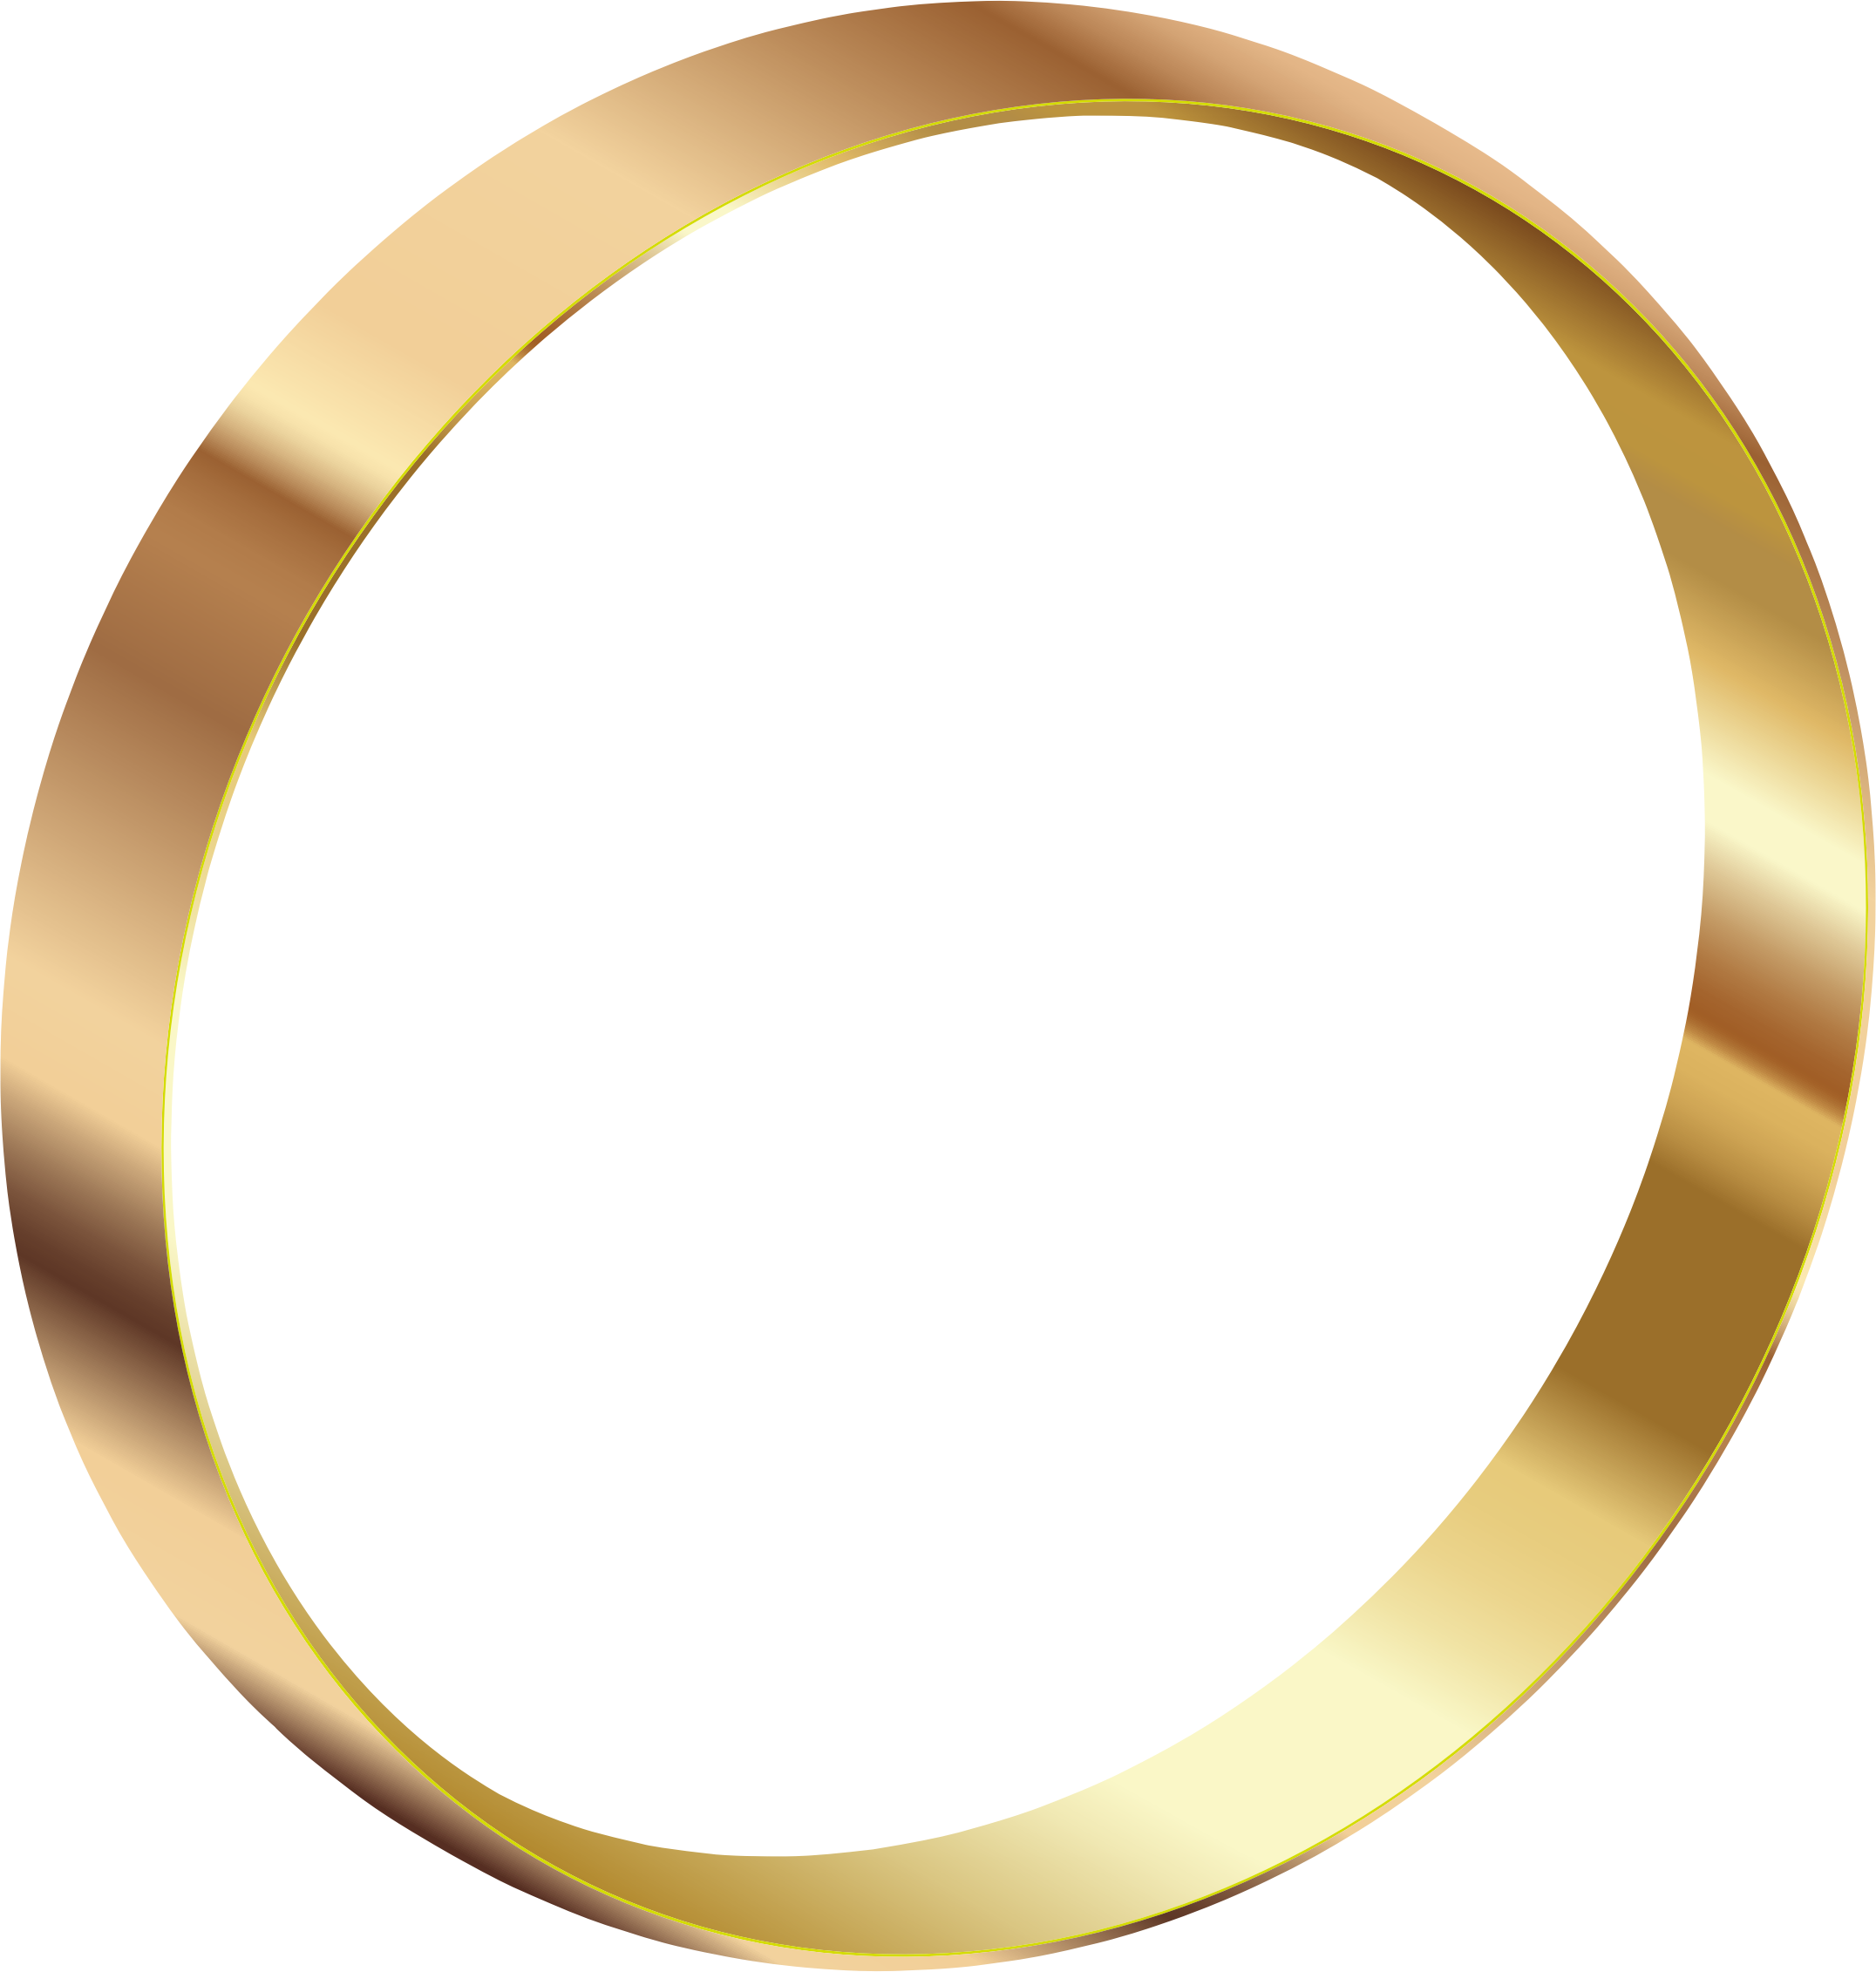 Gold clipart gears. Ring png image purepng